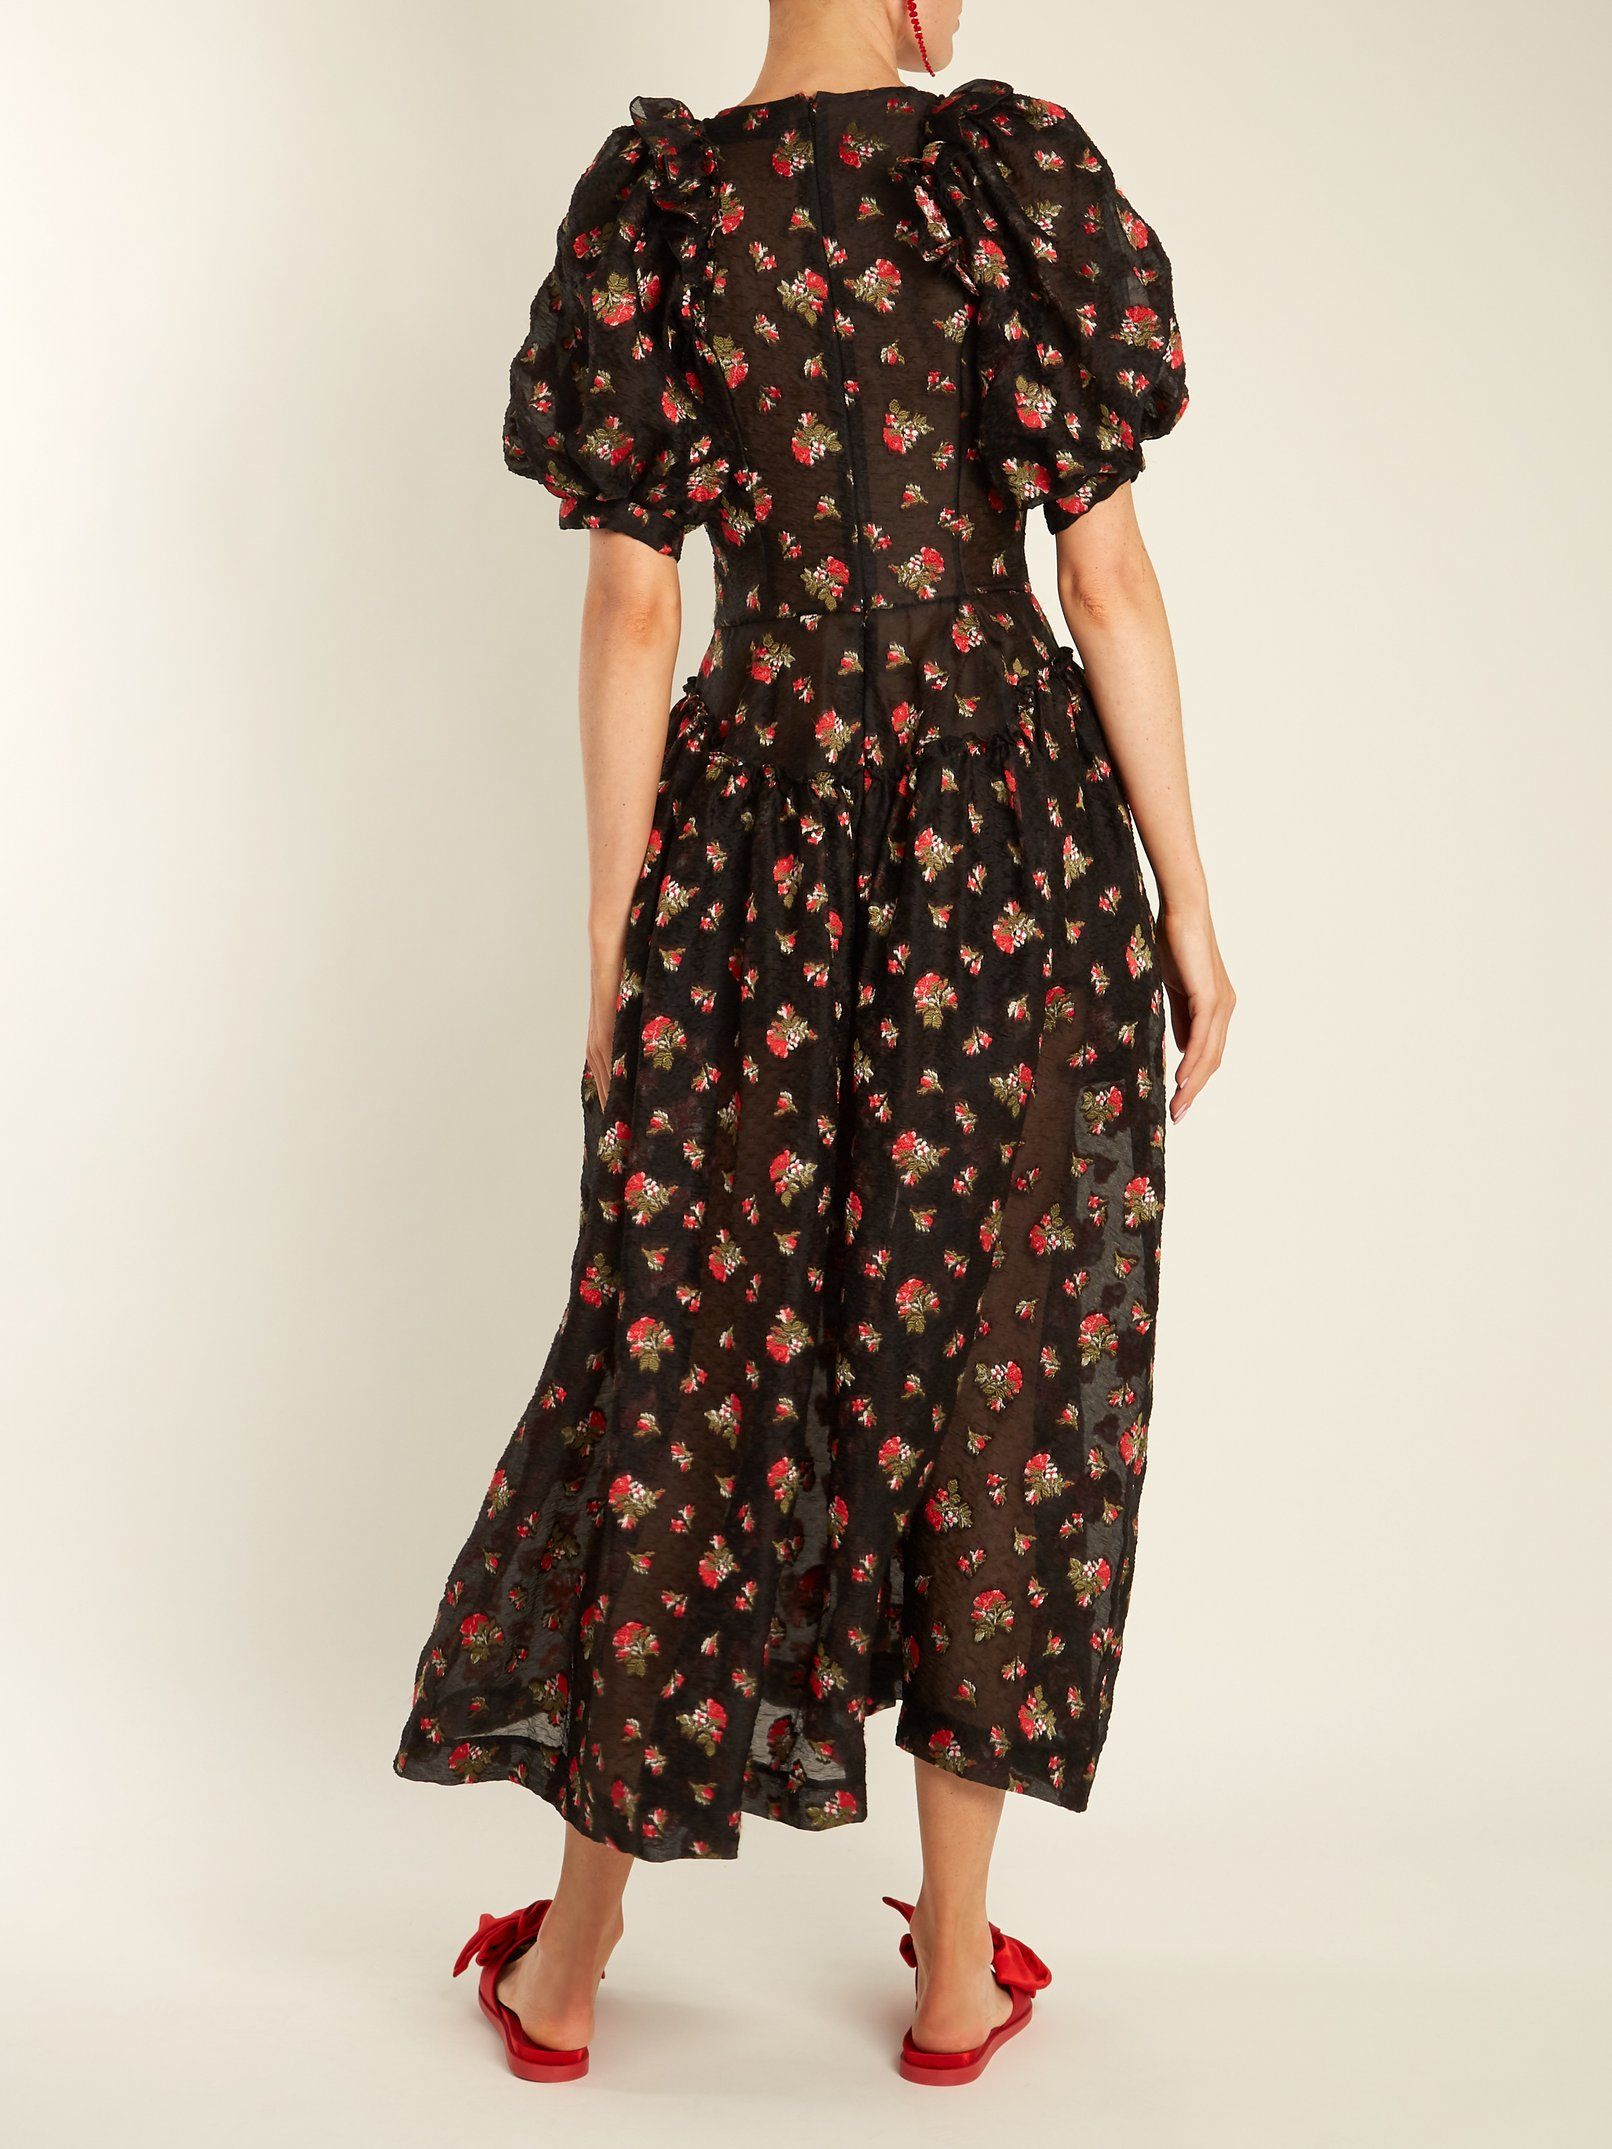 Puff-sleeve floral-embroidered crepe dress Simone Rocha 94kTYmCUS